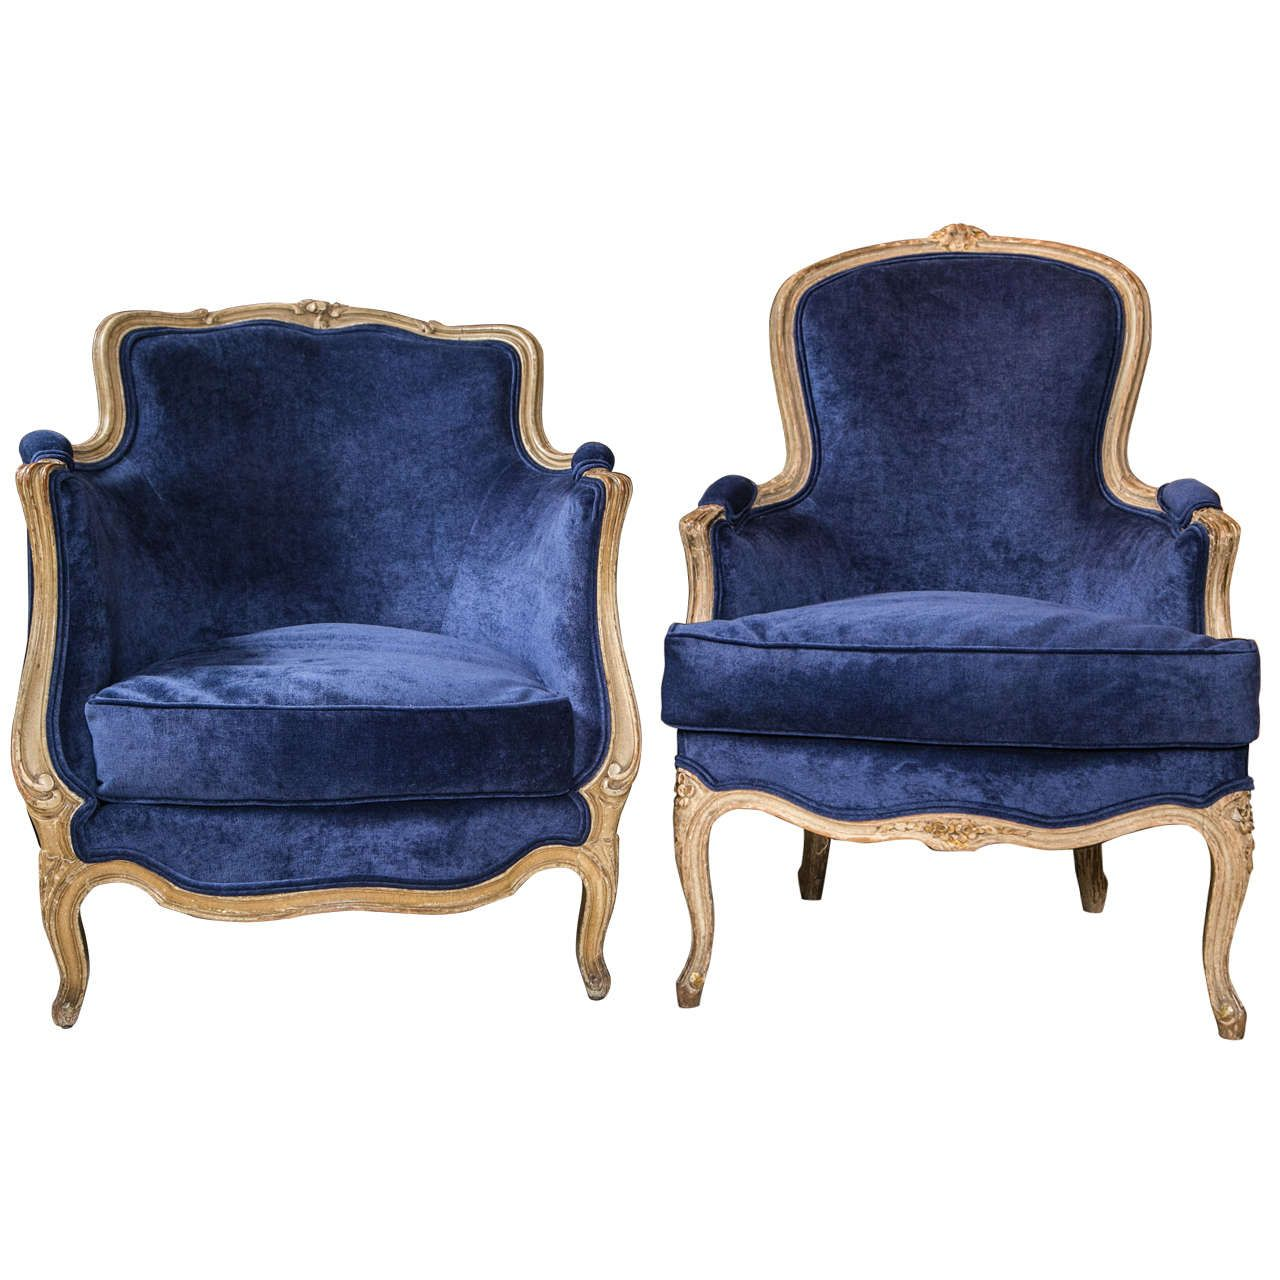 Bergere Chairs For Sale Party Rentals Tables And Pair Of Blue French With Down Filled Cushions